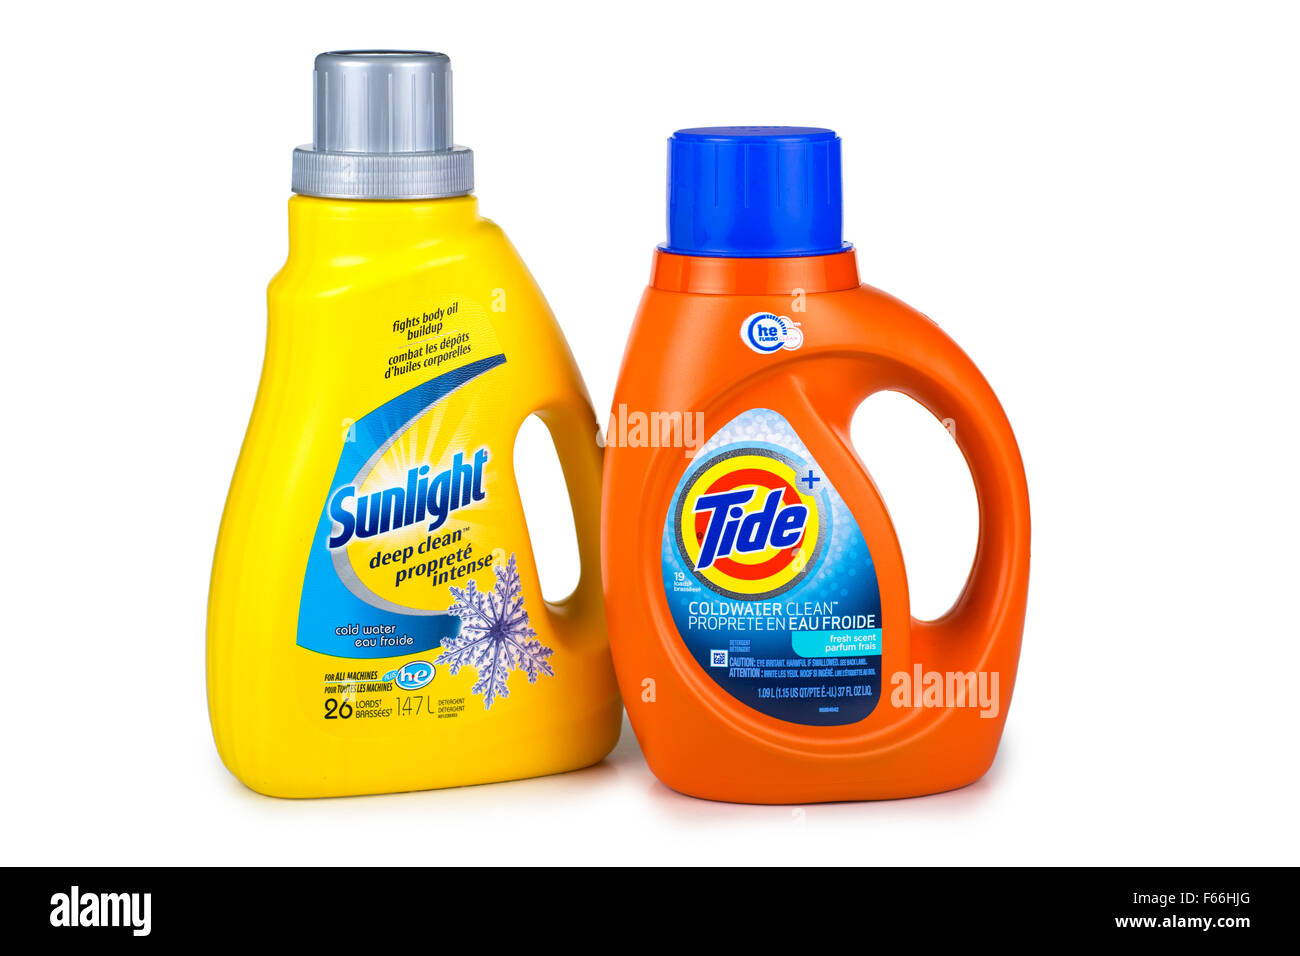 High Efficiency Detergent Brands Tide Laundry Detergent Stock Photos Tide Laundry Detergent Stock